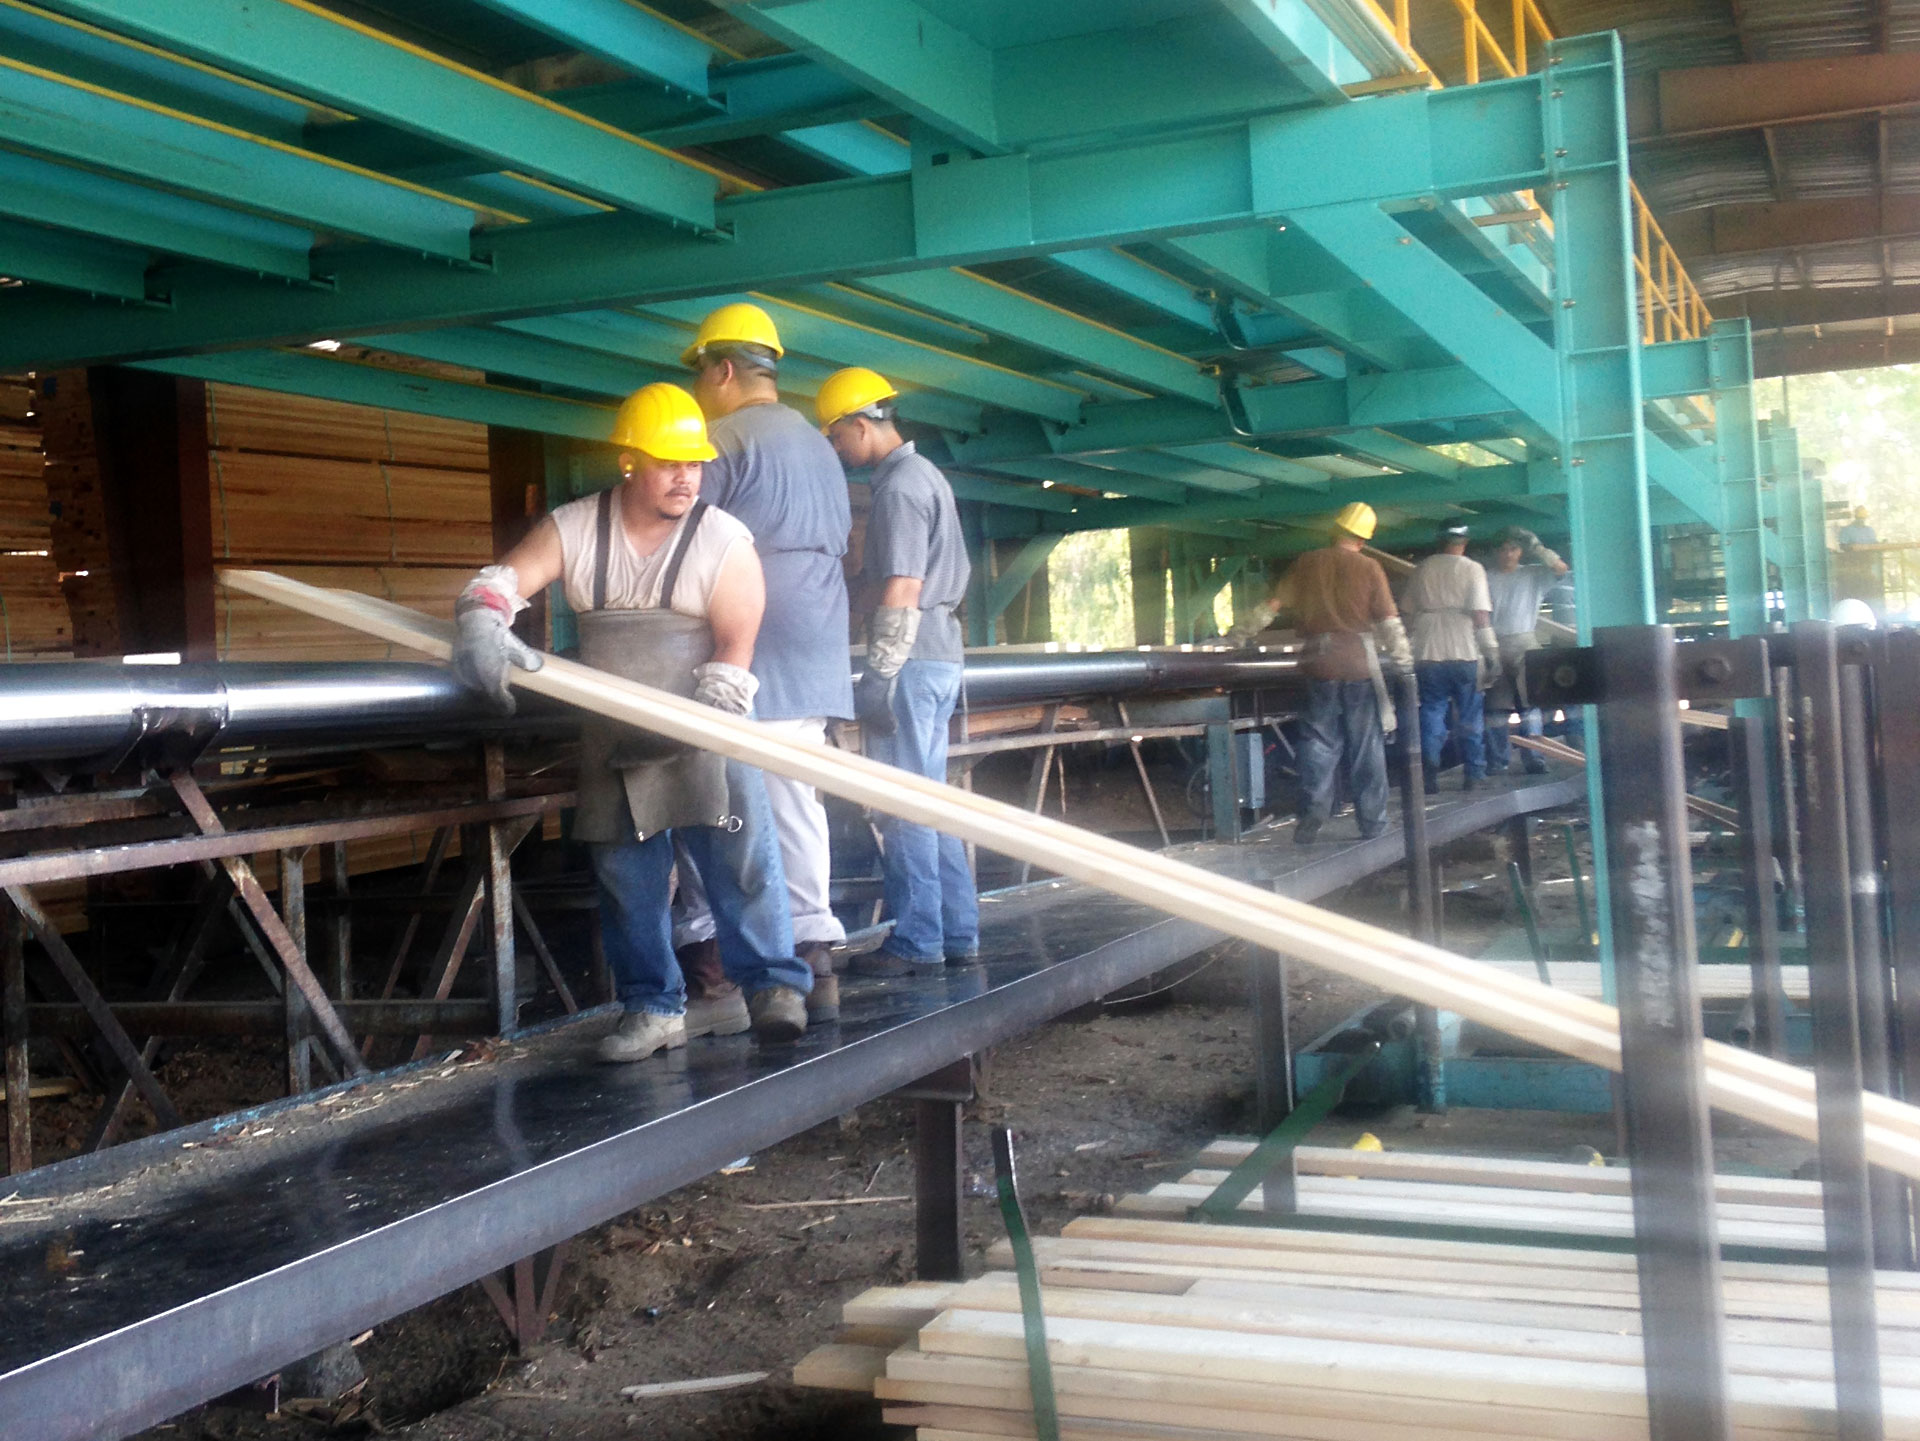 Workers at Sierra Forest Products get lumber ready for shipments.